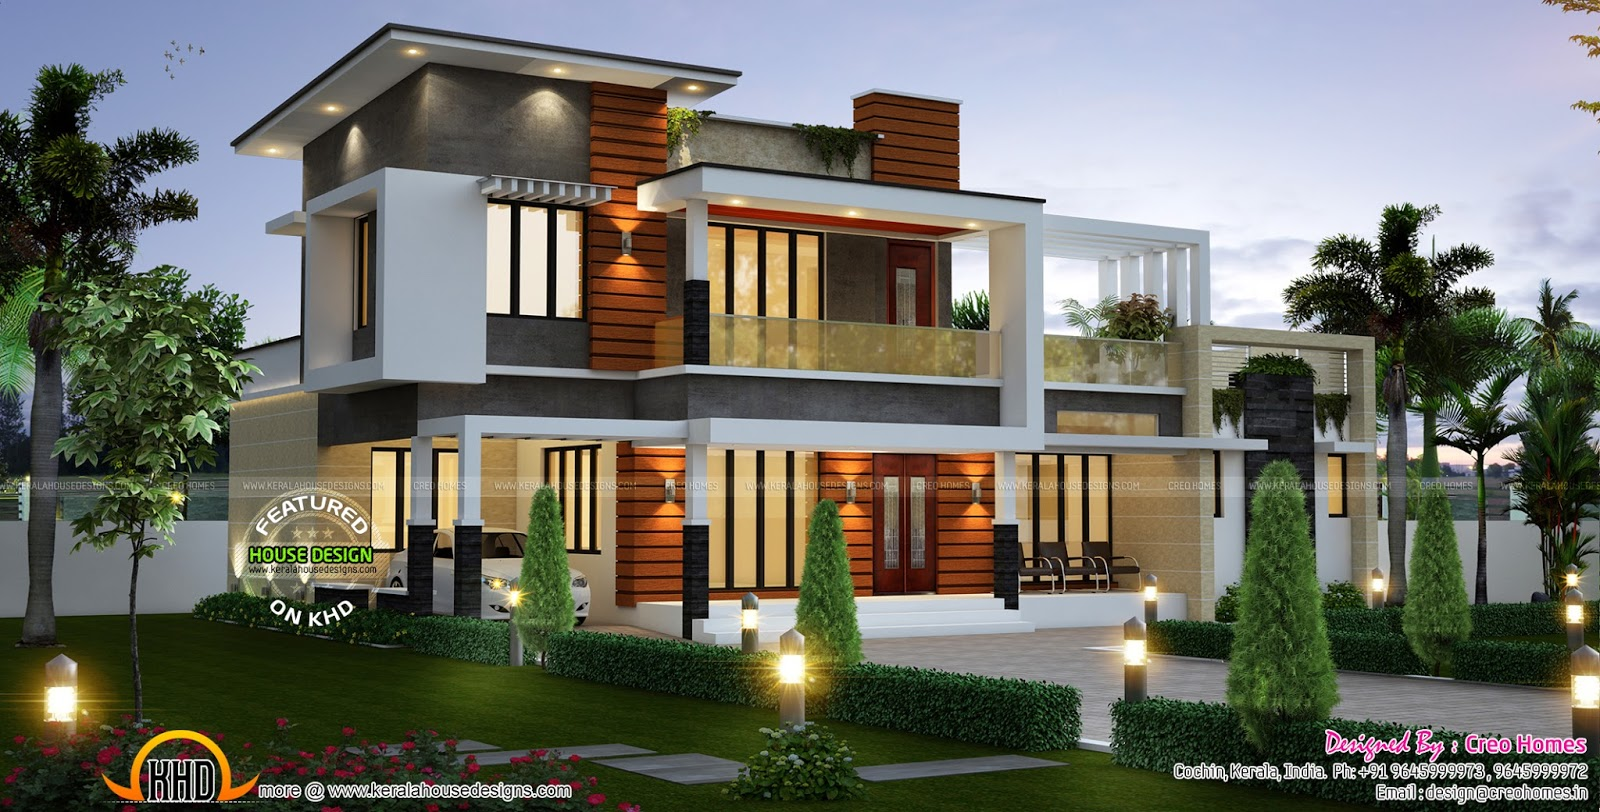 2075 sq ft modern contemporary house kerala home design for 1000 square feet house plan kerala model